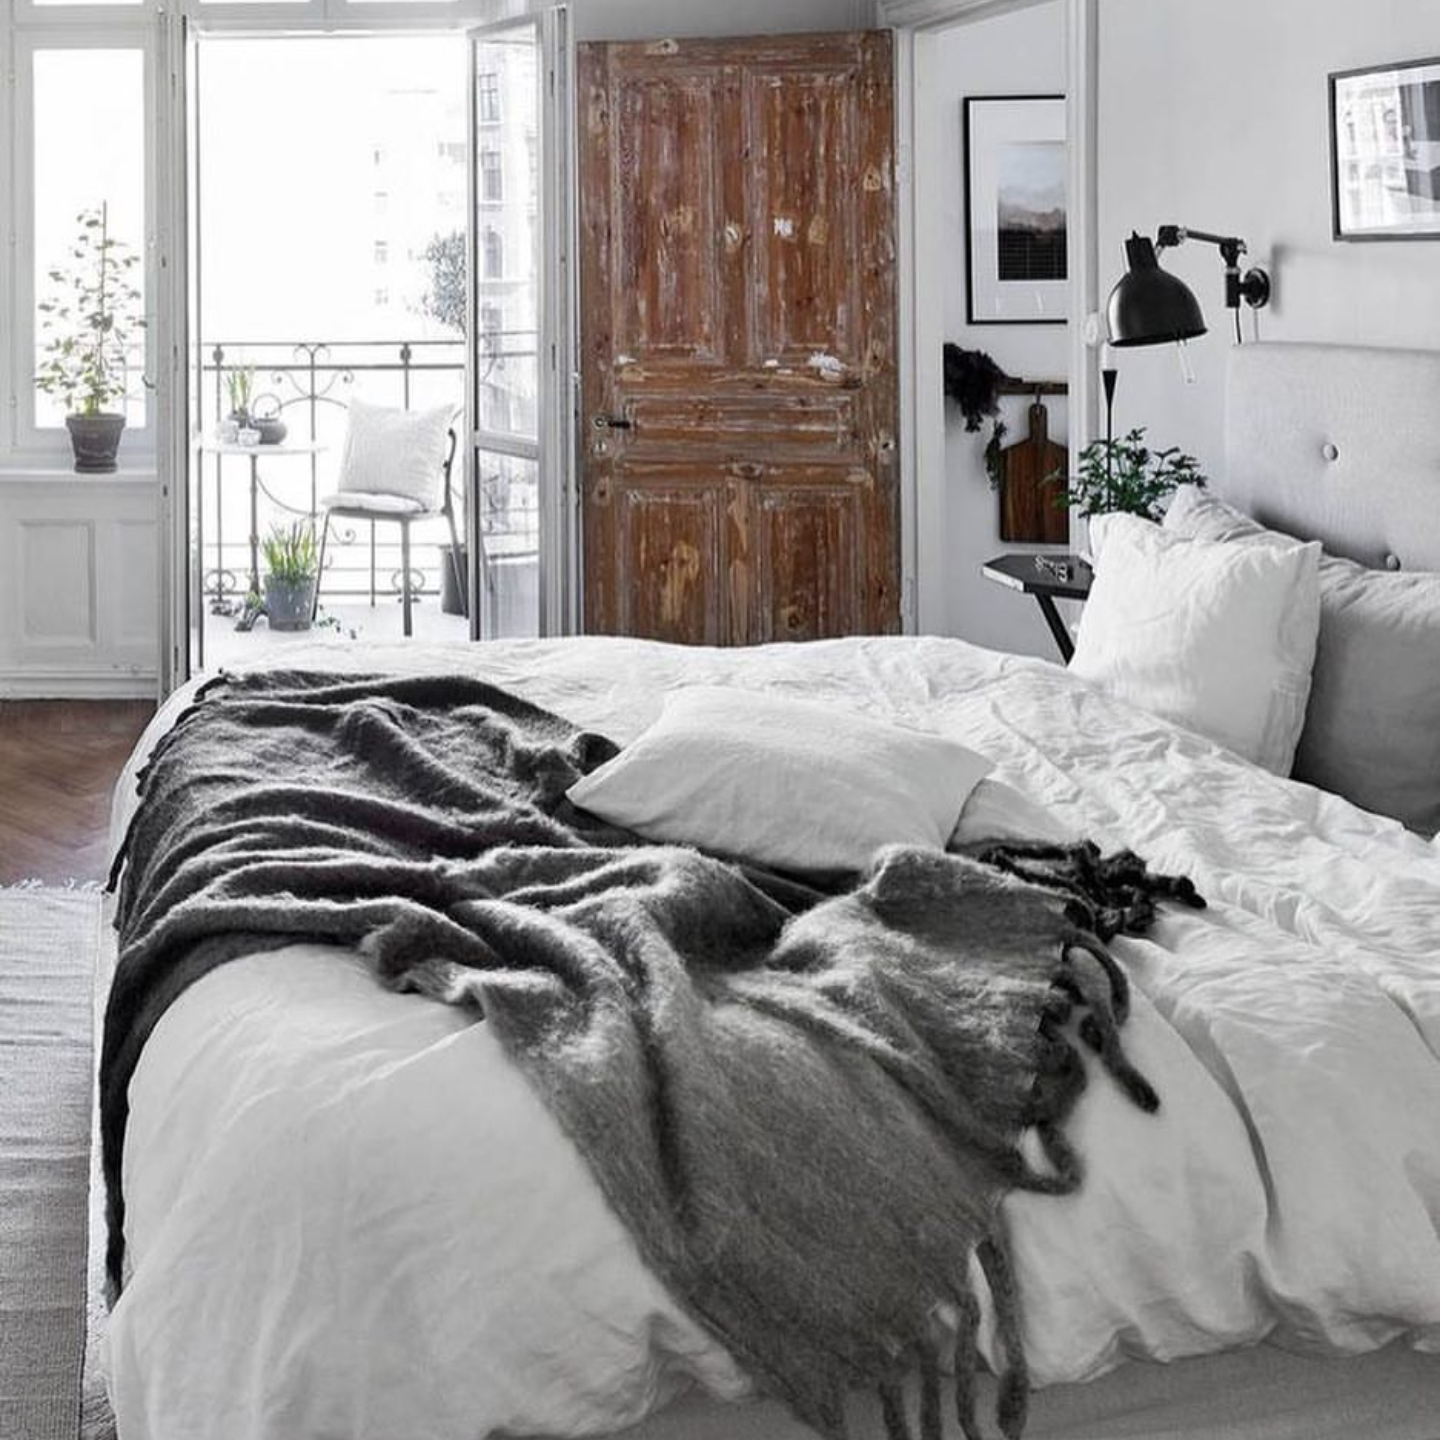 Rustic woods and linen bedding getting my modern rustic pulse racing.